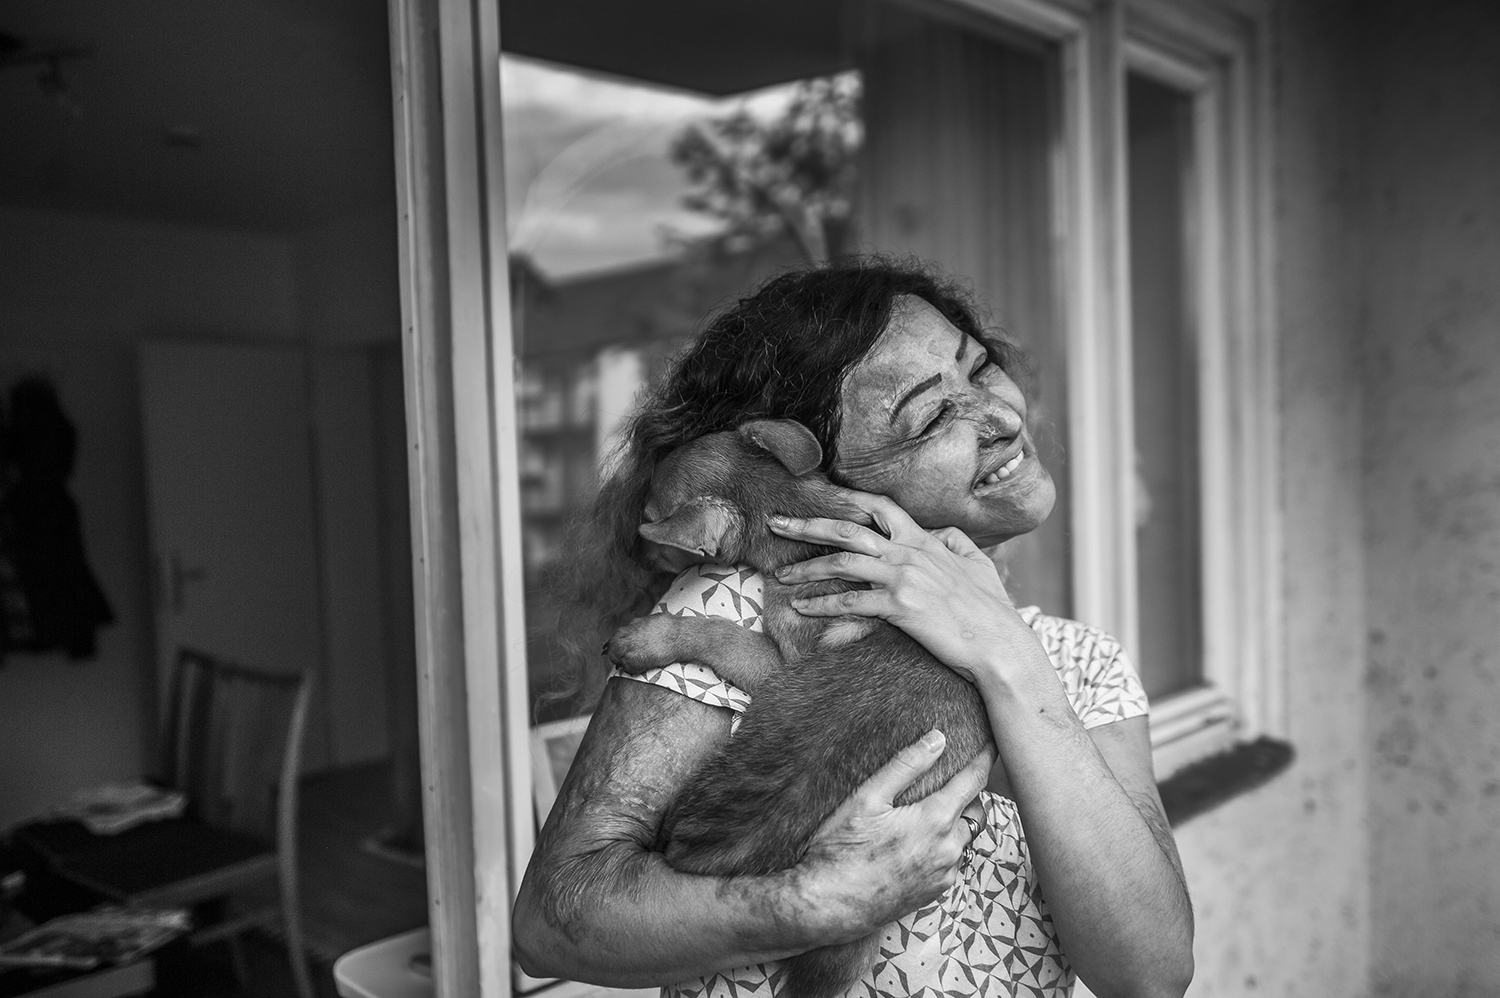 NavidBookani-012 Tahmineh Yusefie, victim of an acid attack, stands on her balcony, smiles and cuddles her dog. In the background we can look inside her living room in her flat in Hanover, Germany, the house opposite is mirrored in the window. July 22, 2016 Significance of the photo: Despite her pain and her past she still has joy, tenderness and hope. What cannot be seen in the picture, is that she abandoned the dog a few days later. So the picture became a symbol for the trauma that left her craving for closeness and at the same time made her so incapable of bonding. Circumstances: Tahmineh invited the photographer for dinner at her flat in Hanover, Germany. They sat talking, when she played with the puppy he took pictures.